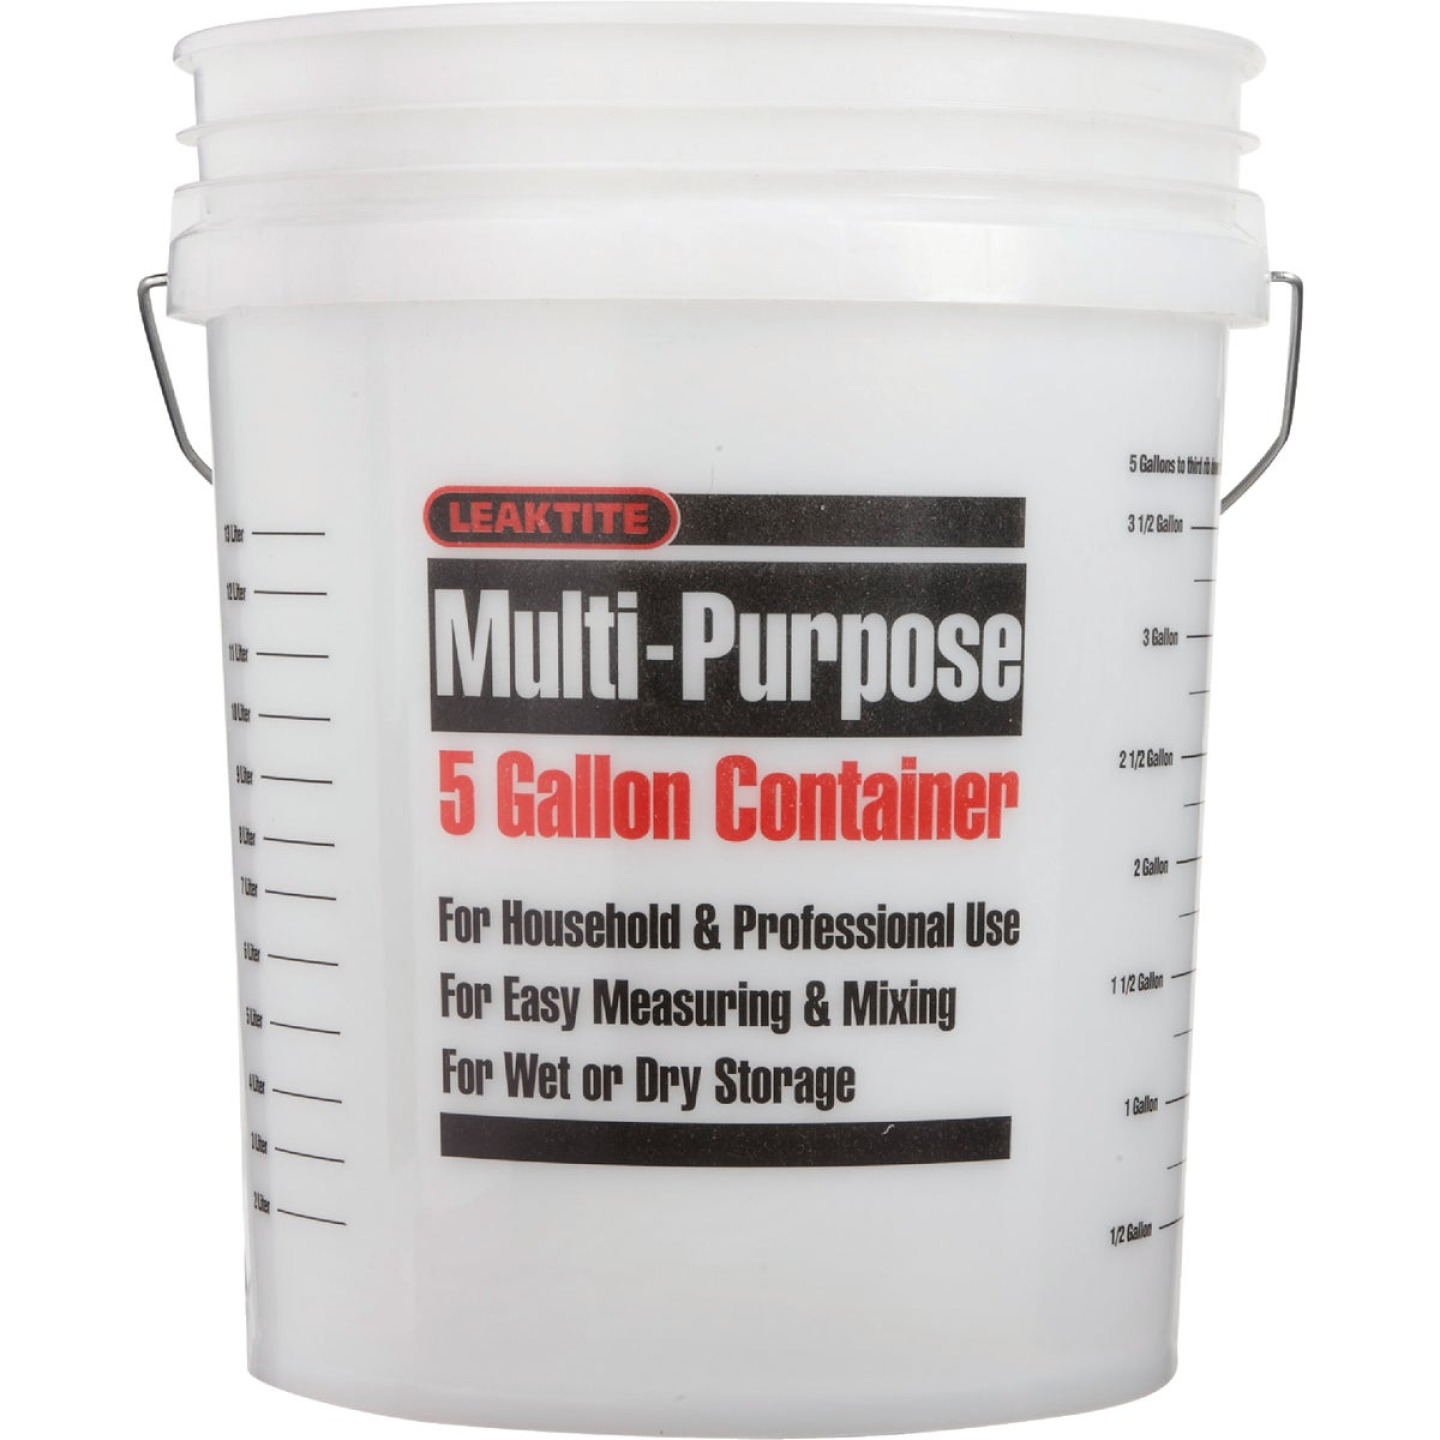 Leaktite 5 Gal. Clear Plastic Pail with Measuring Increments Image 2